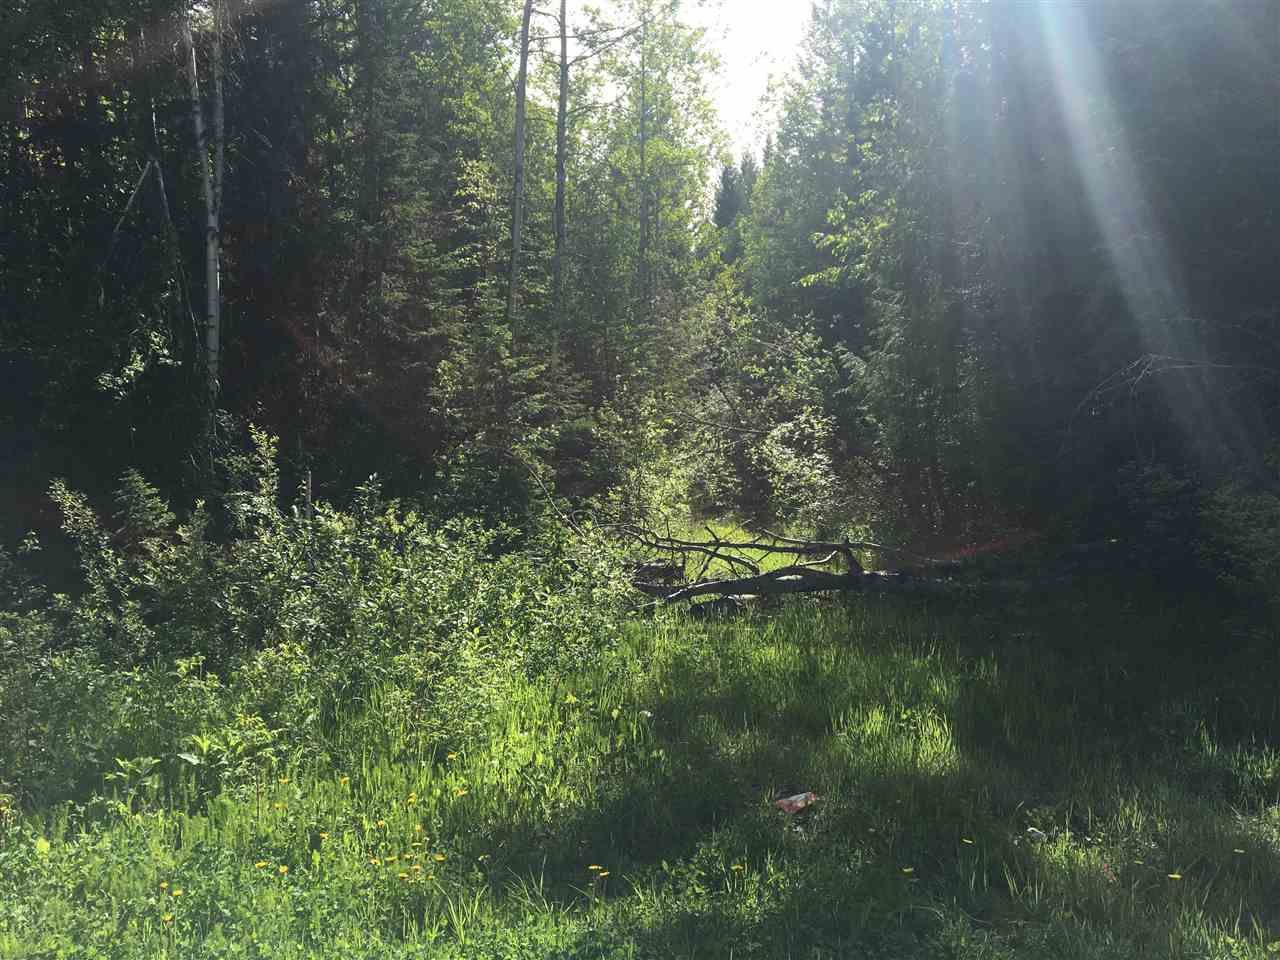 Photo 5: Photos: SHAVER ROAD in Quesnel: Quesnel - Rural North Land for sale (Quesnel (Zone 28))  : MLS®# R2461973